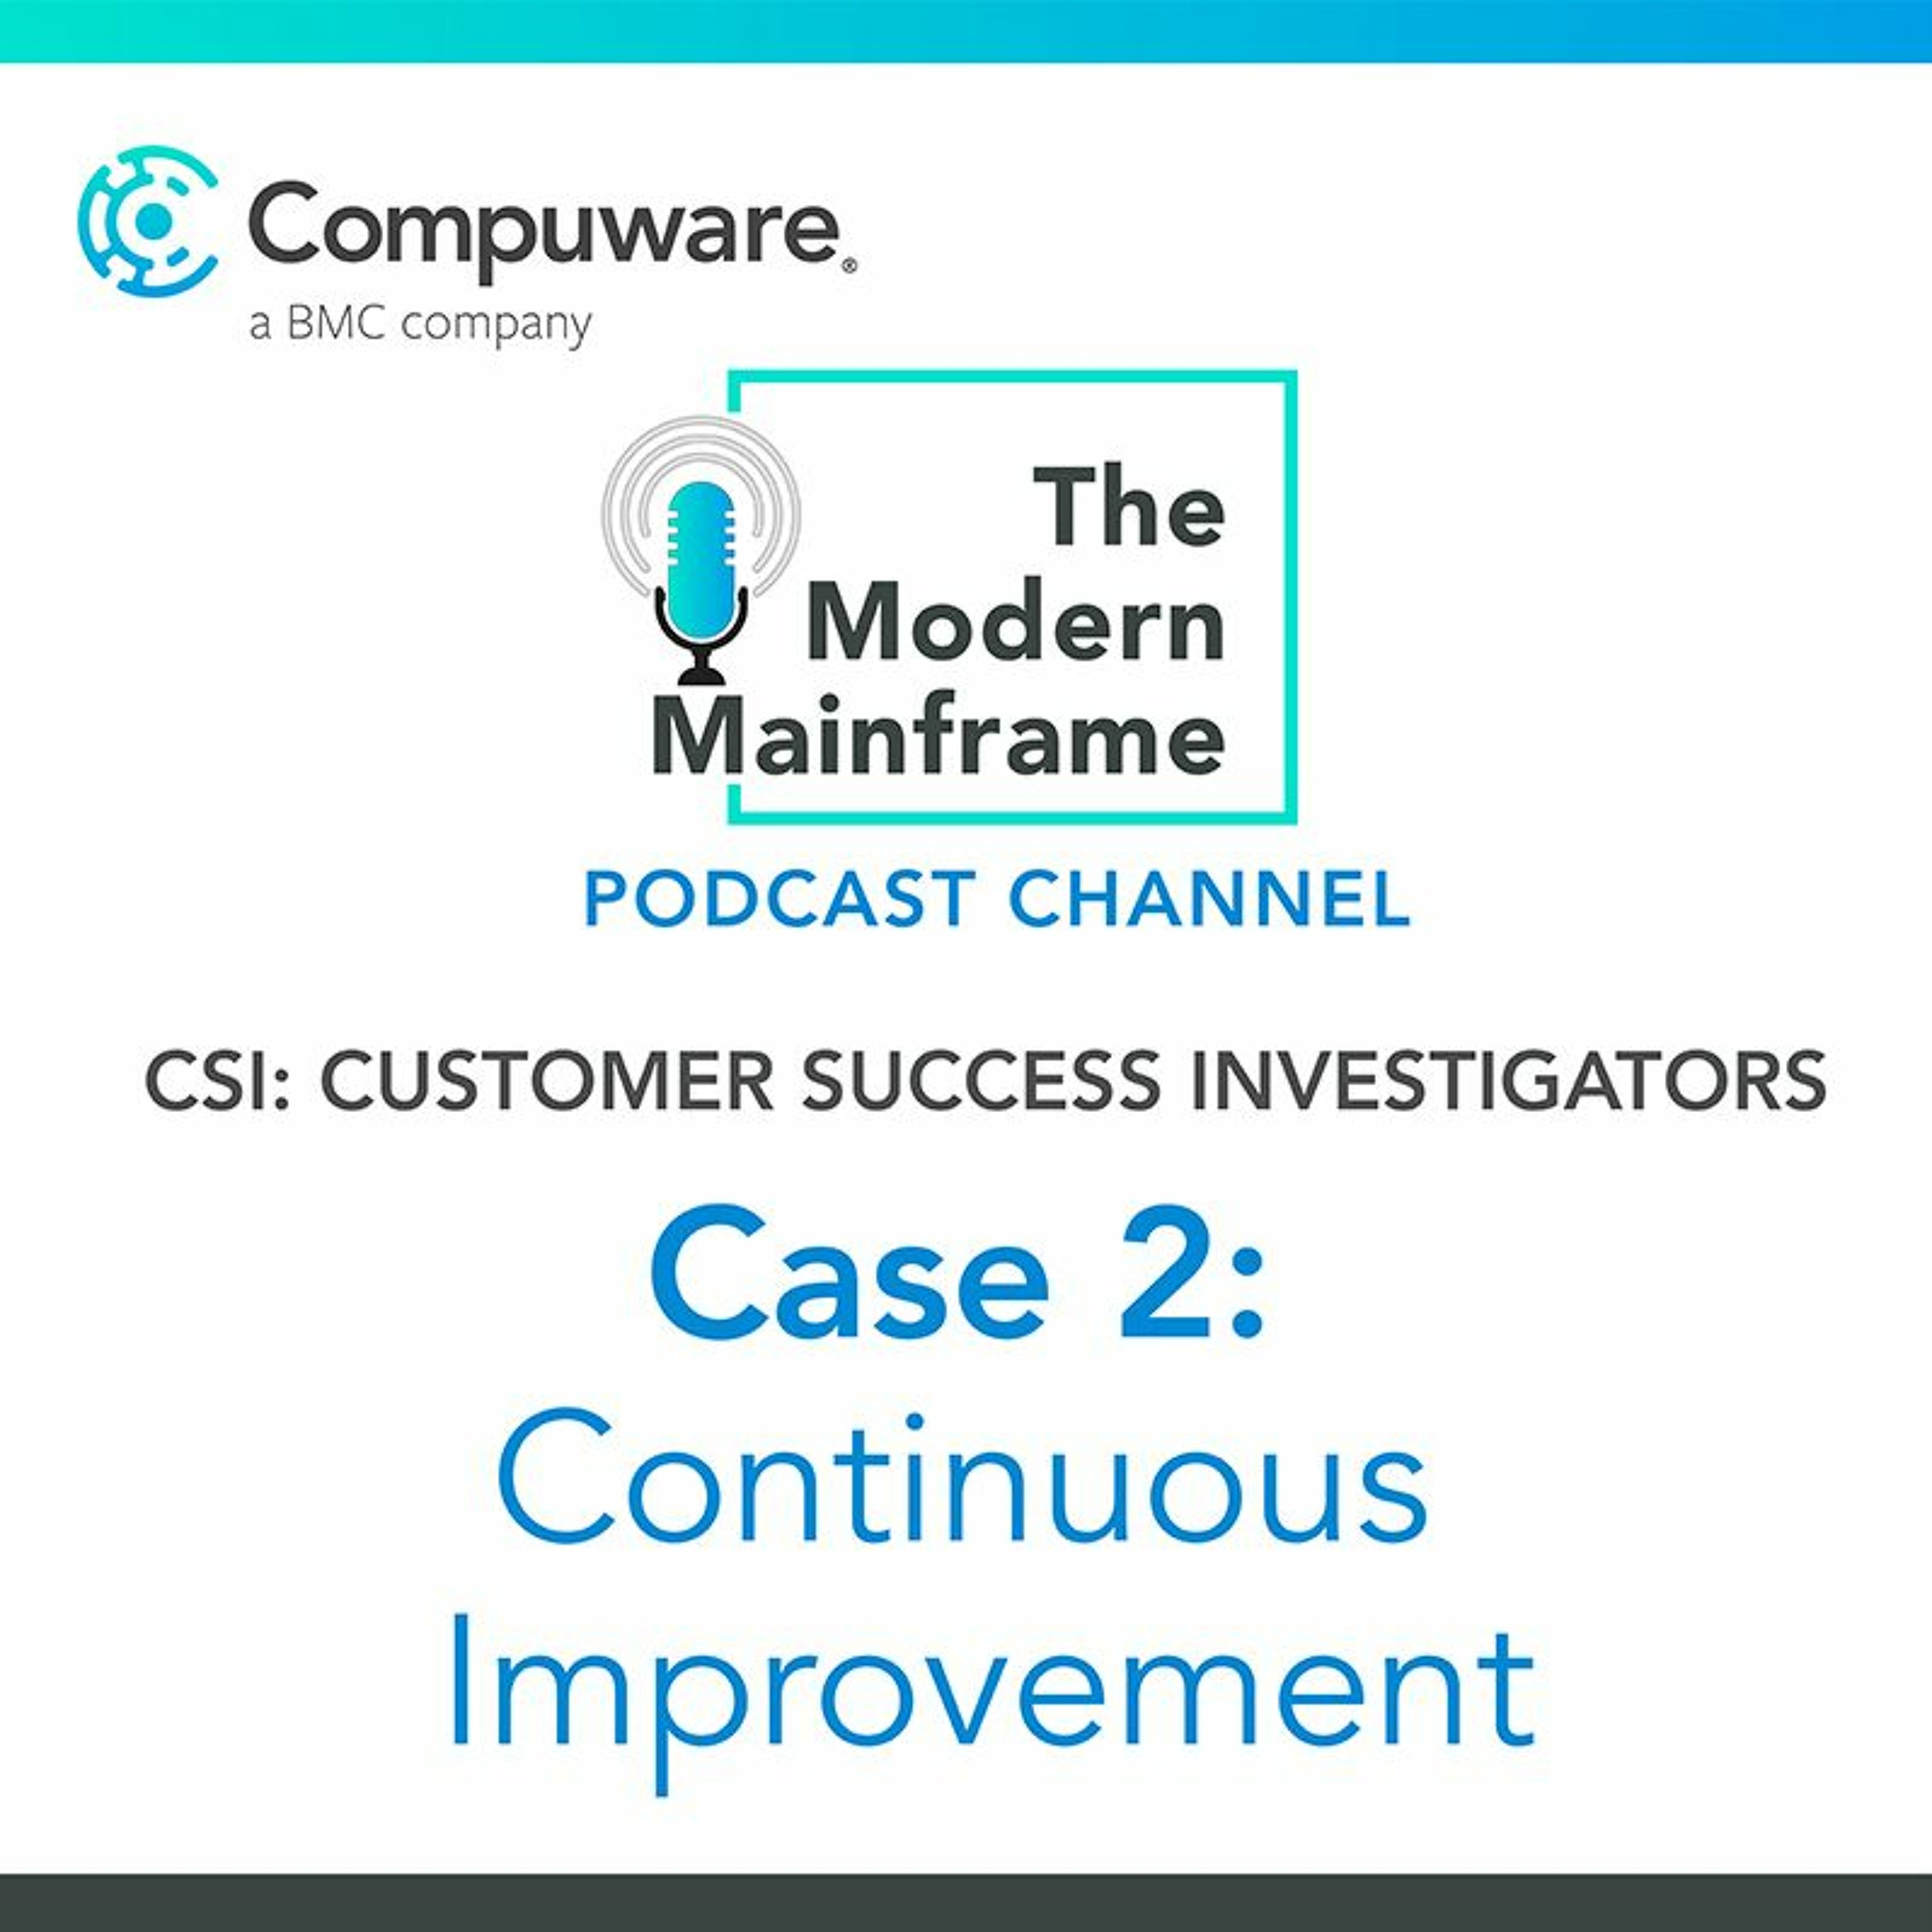 Case 2: Continuous Testing & Monitoring for Continuous Improvement